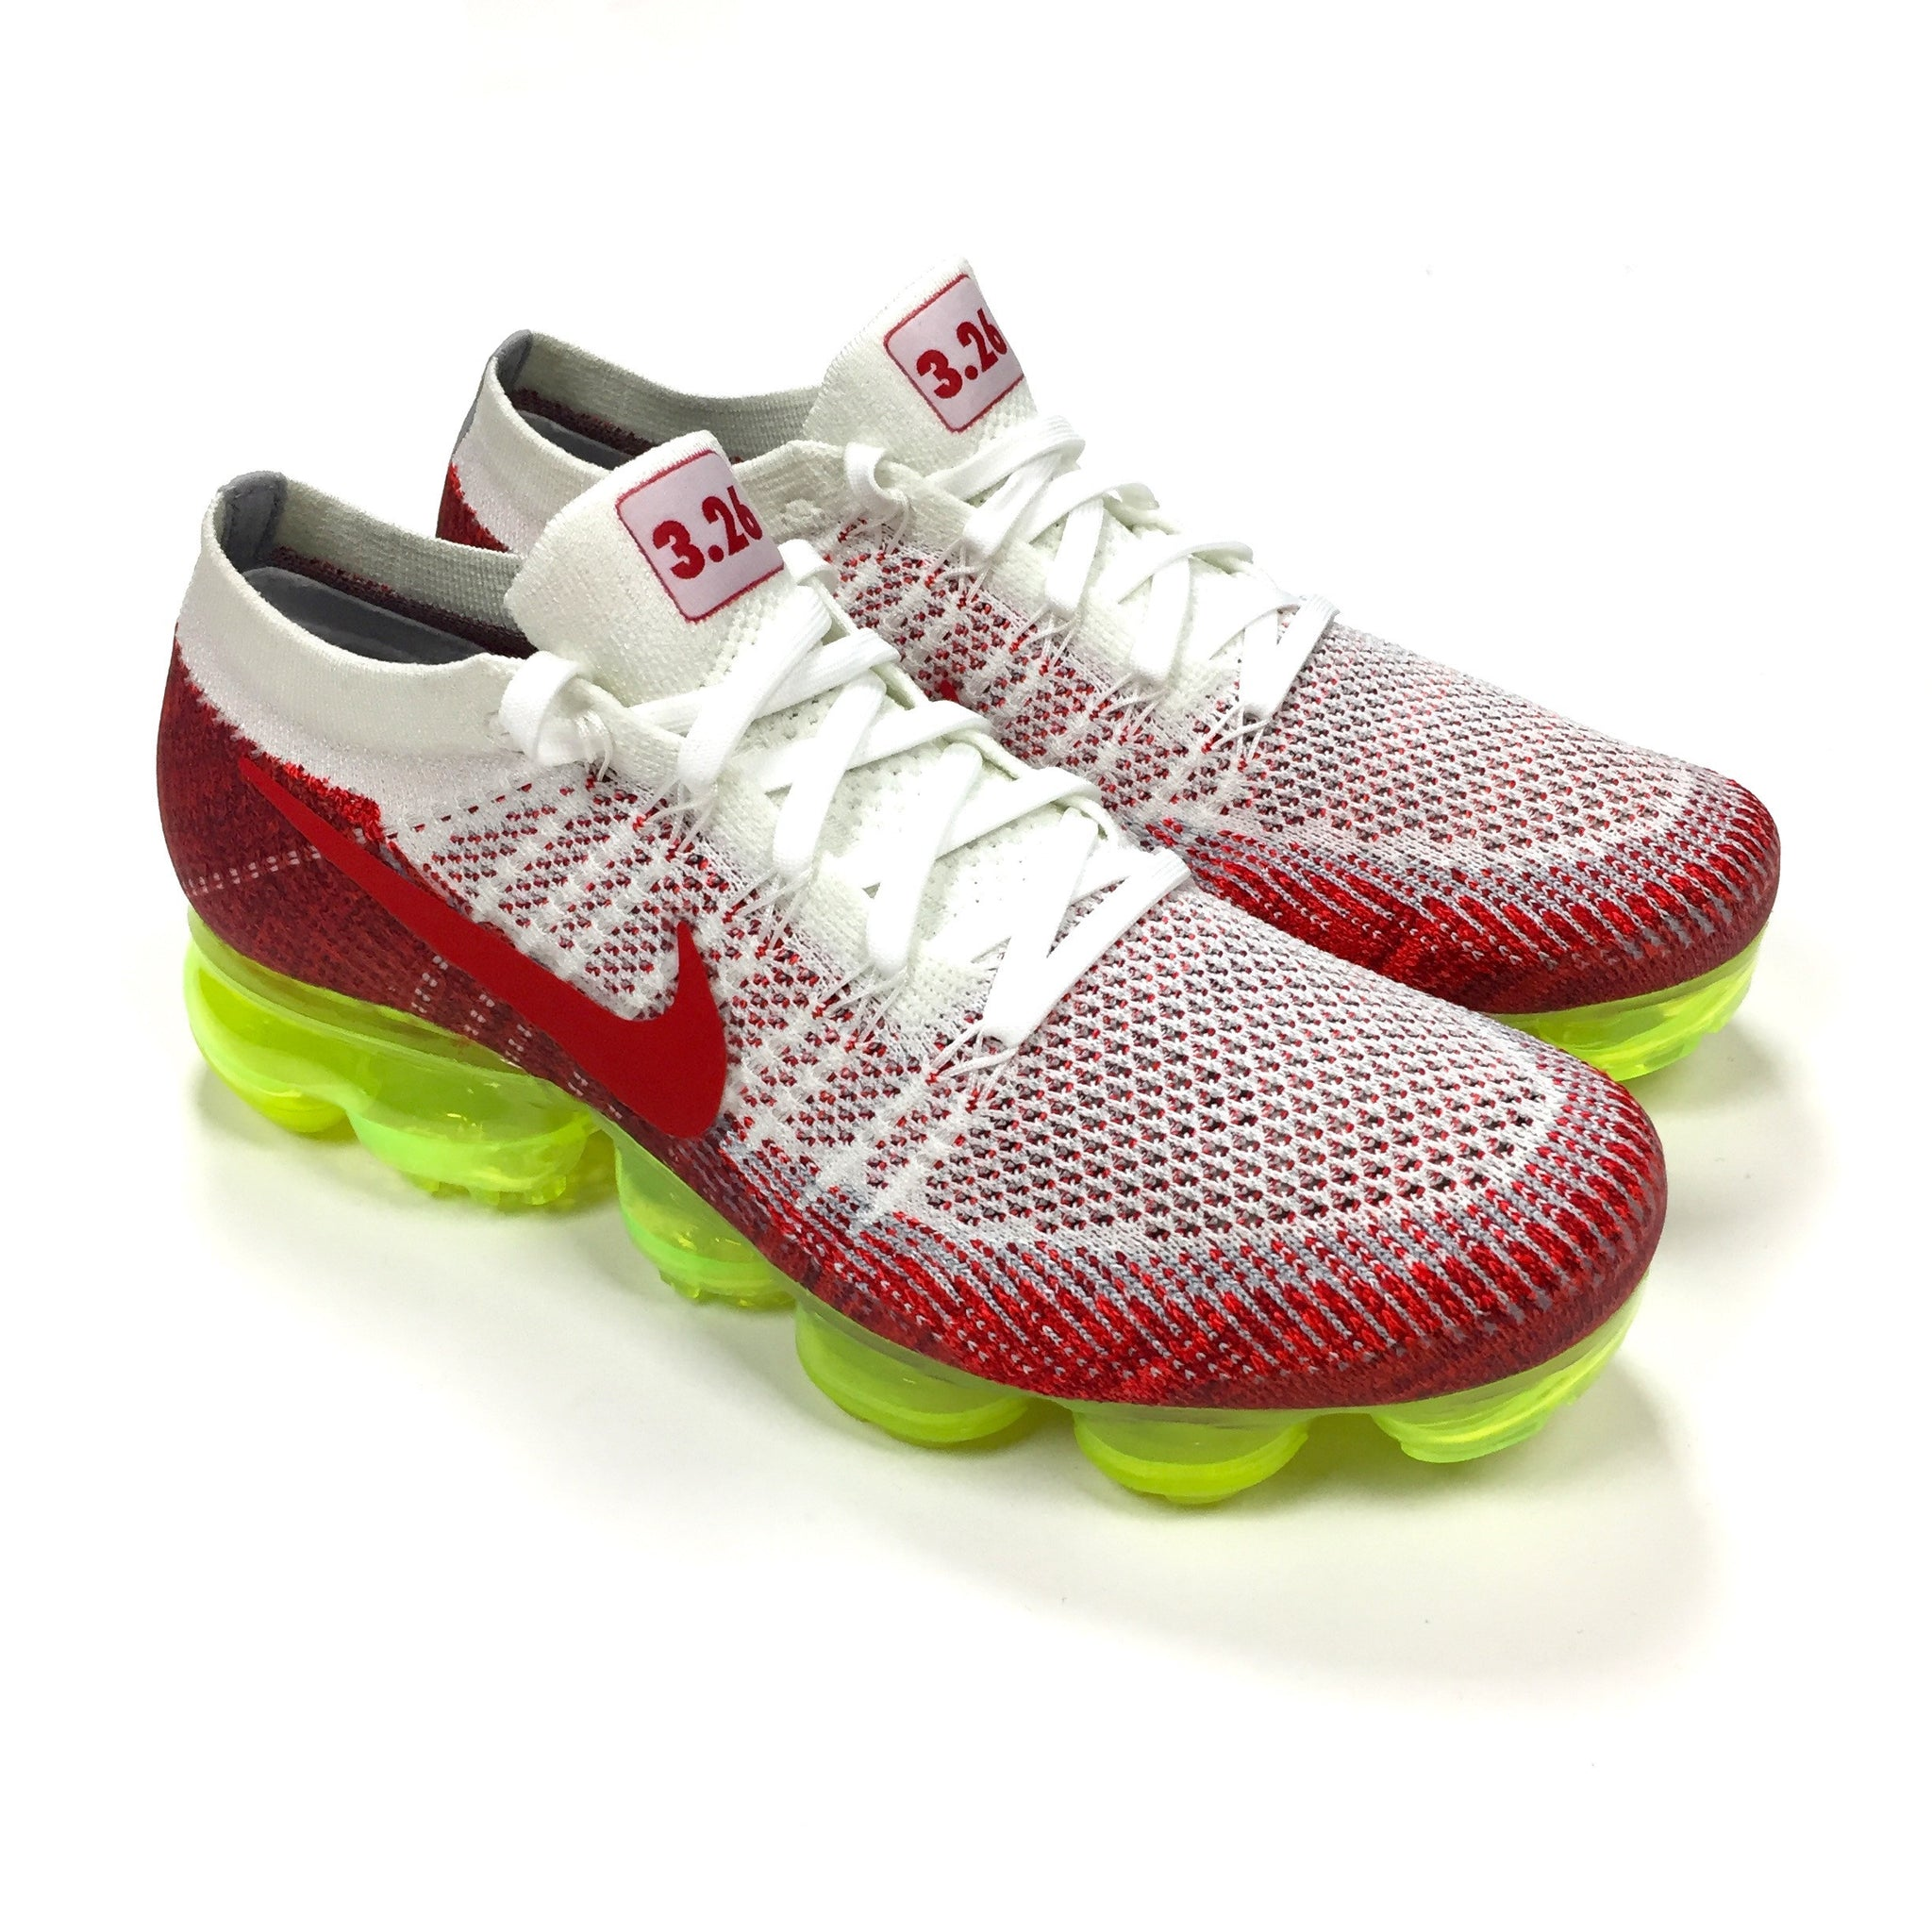 low priced 51e6f bbcd1 Nike - Men's Air Vapormax Flyknit AMD17 White / Red / Volt ...